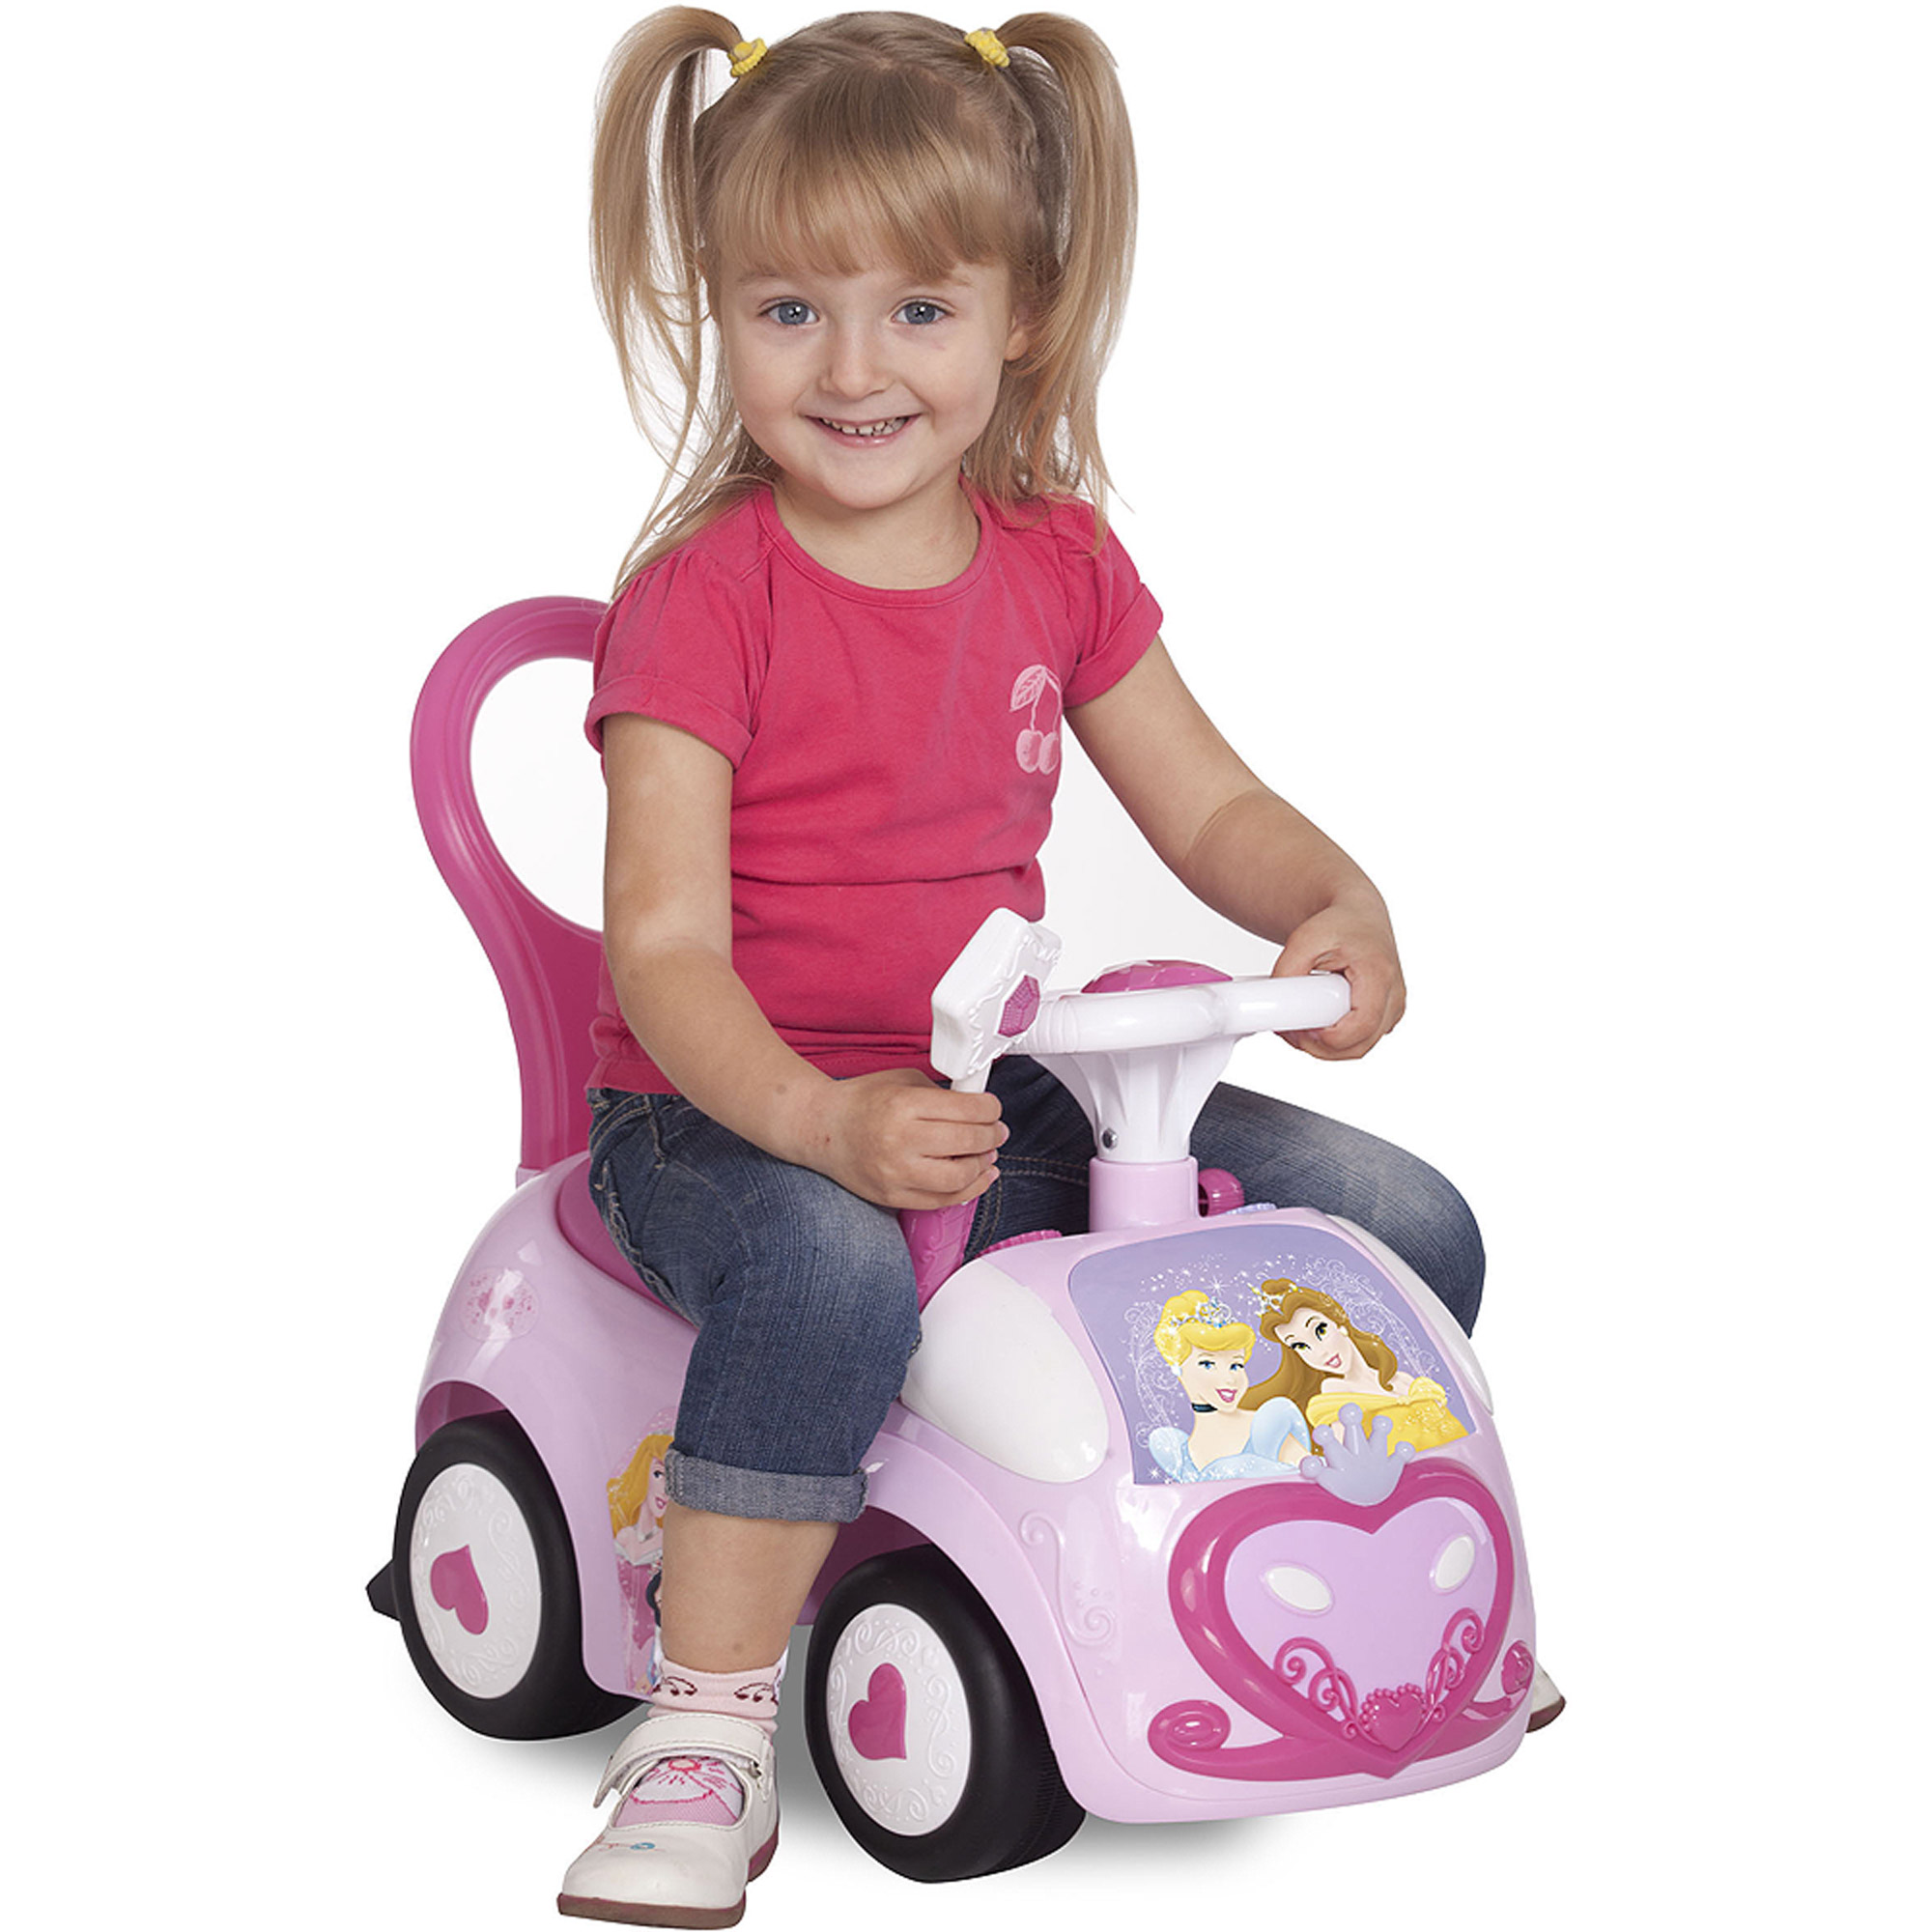 Kid land Disney Dancing Princess Activity Ride Walmart